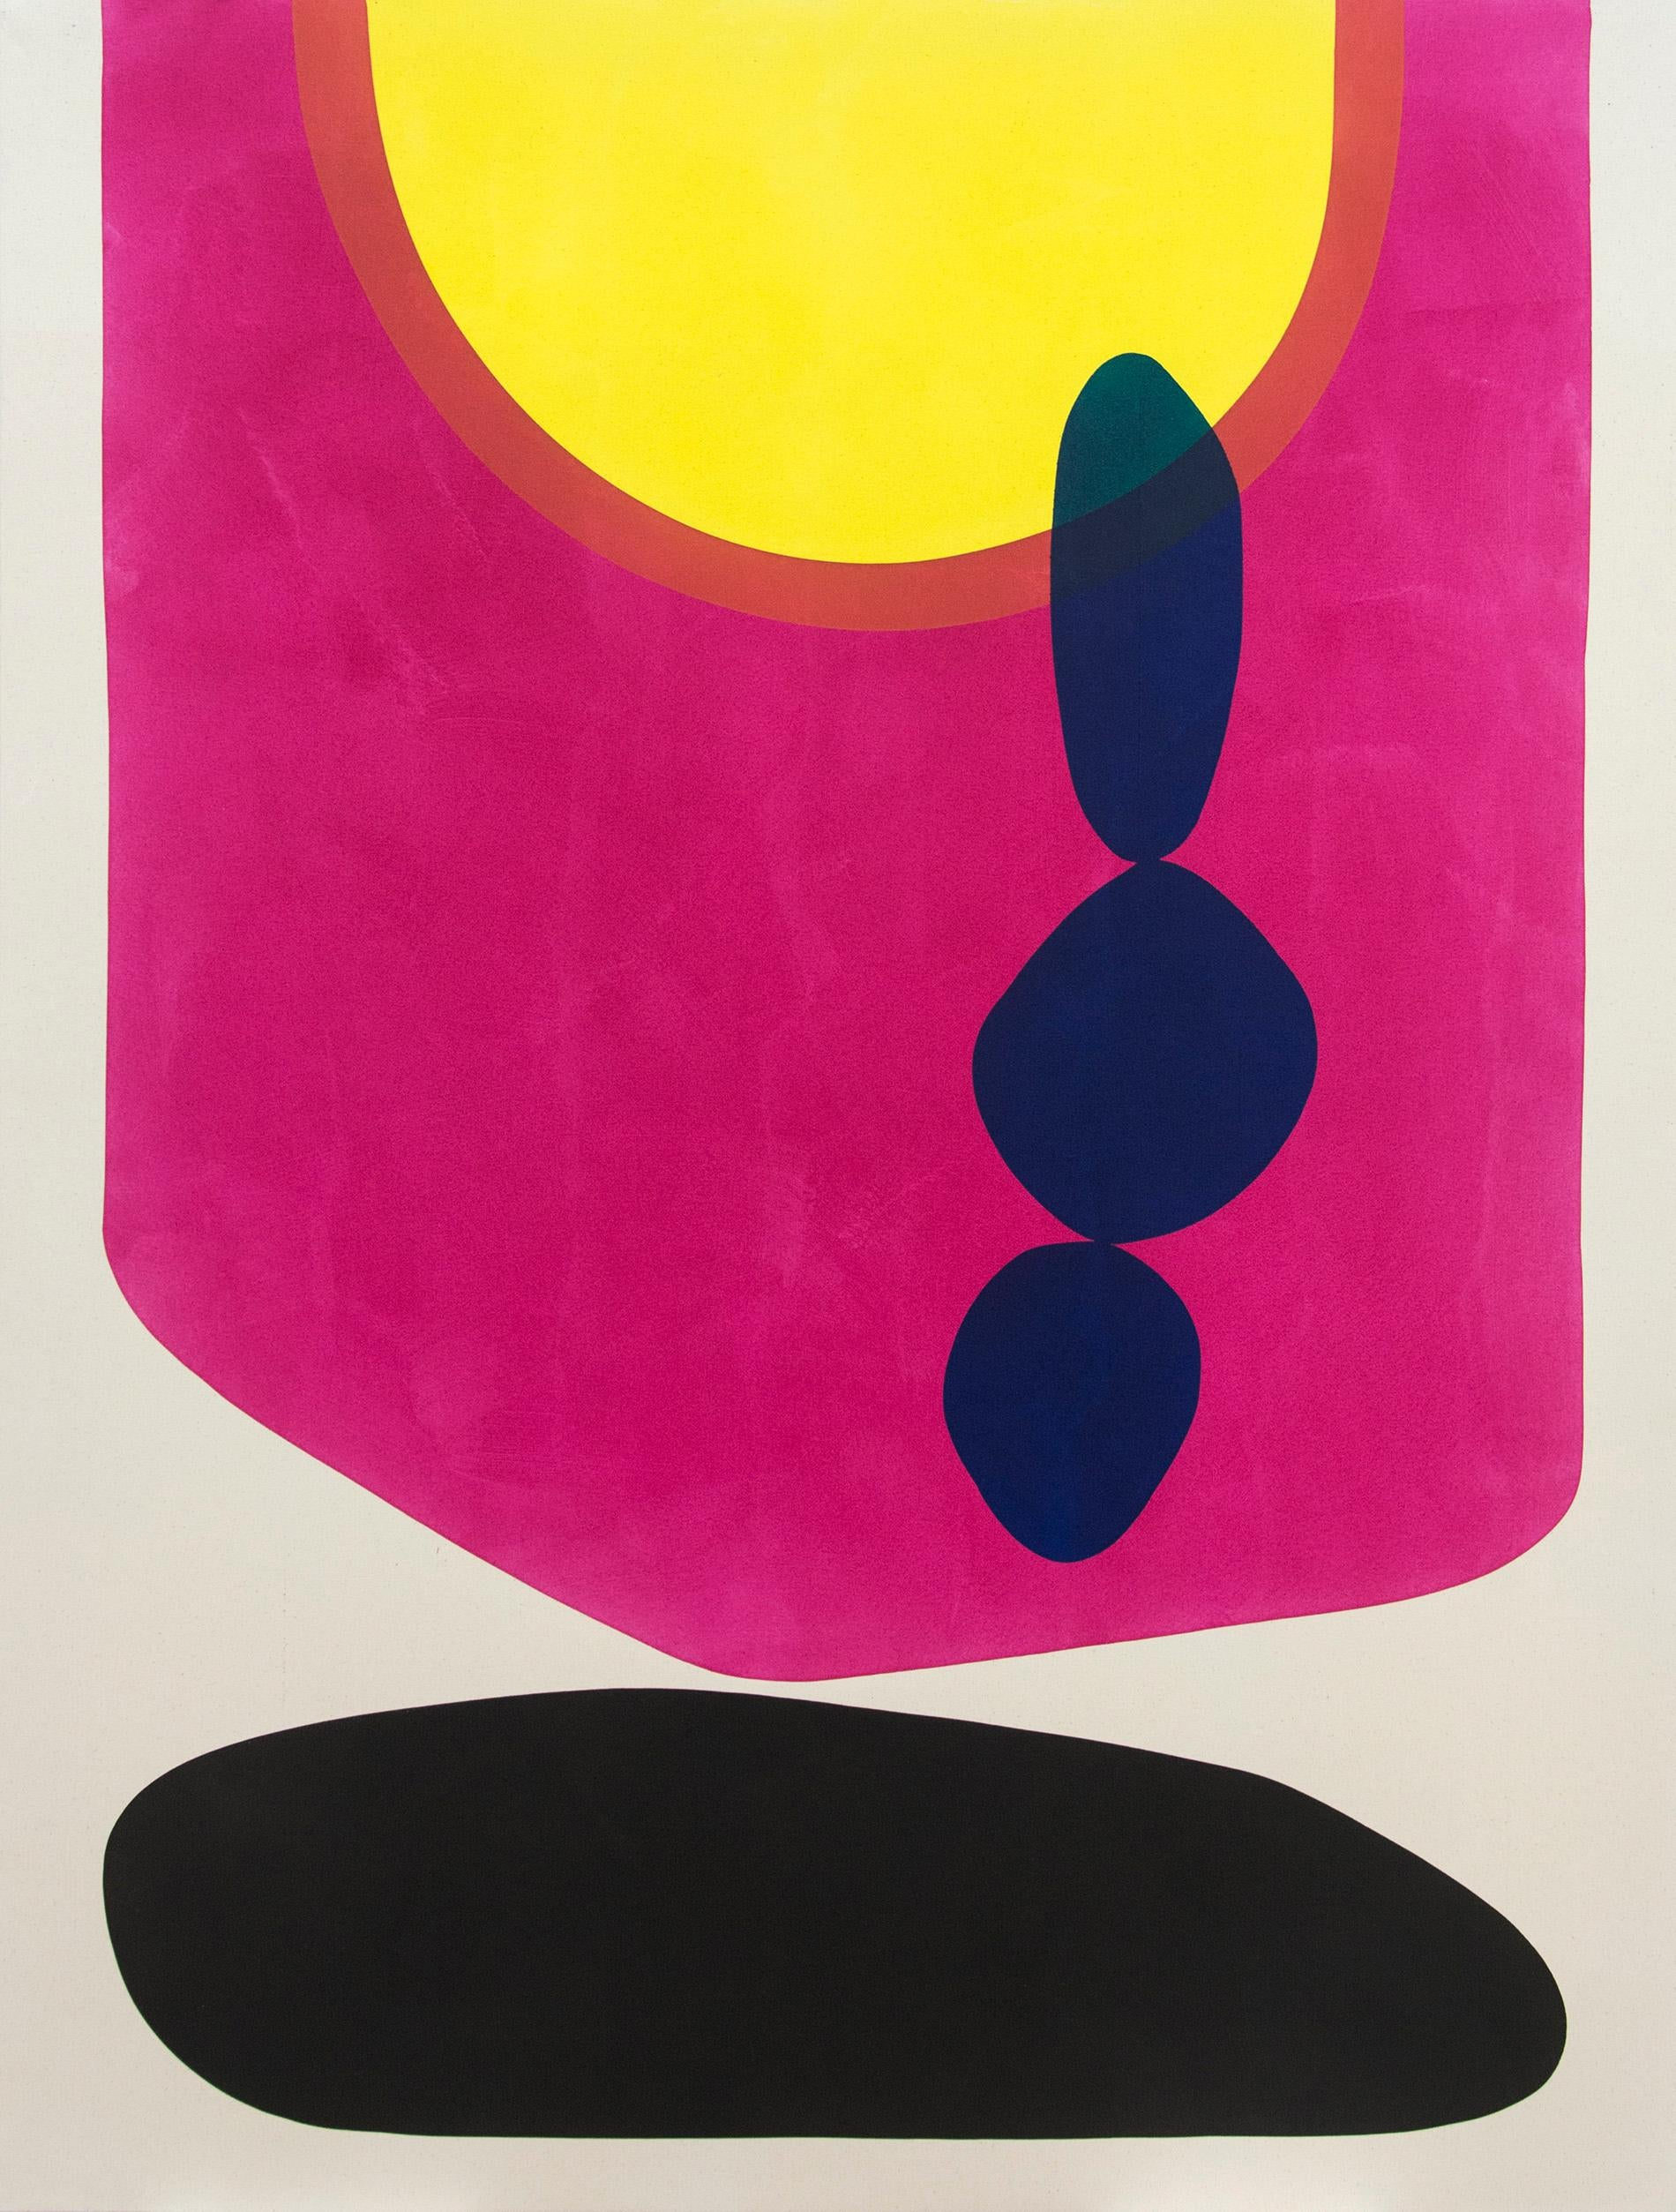 3 Rocks Against Magenta - brightly coloured shapes of magenta and yellow